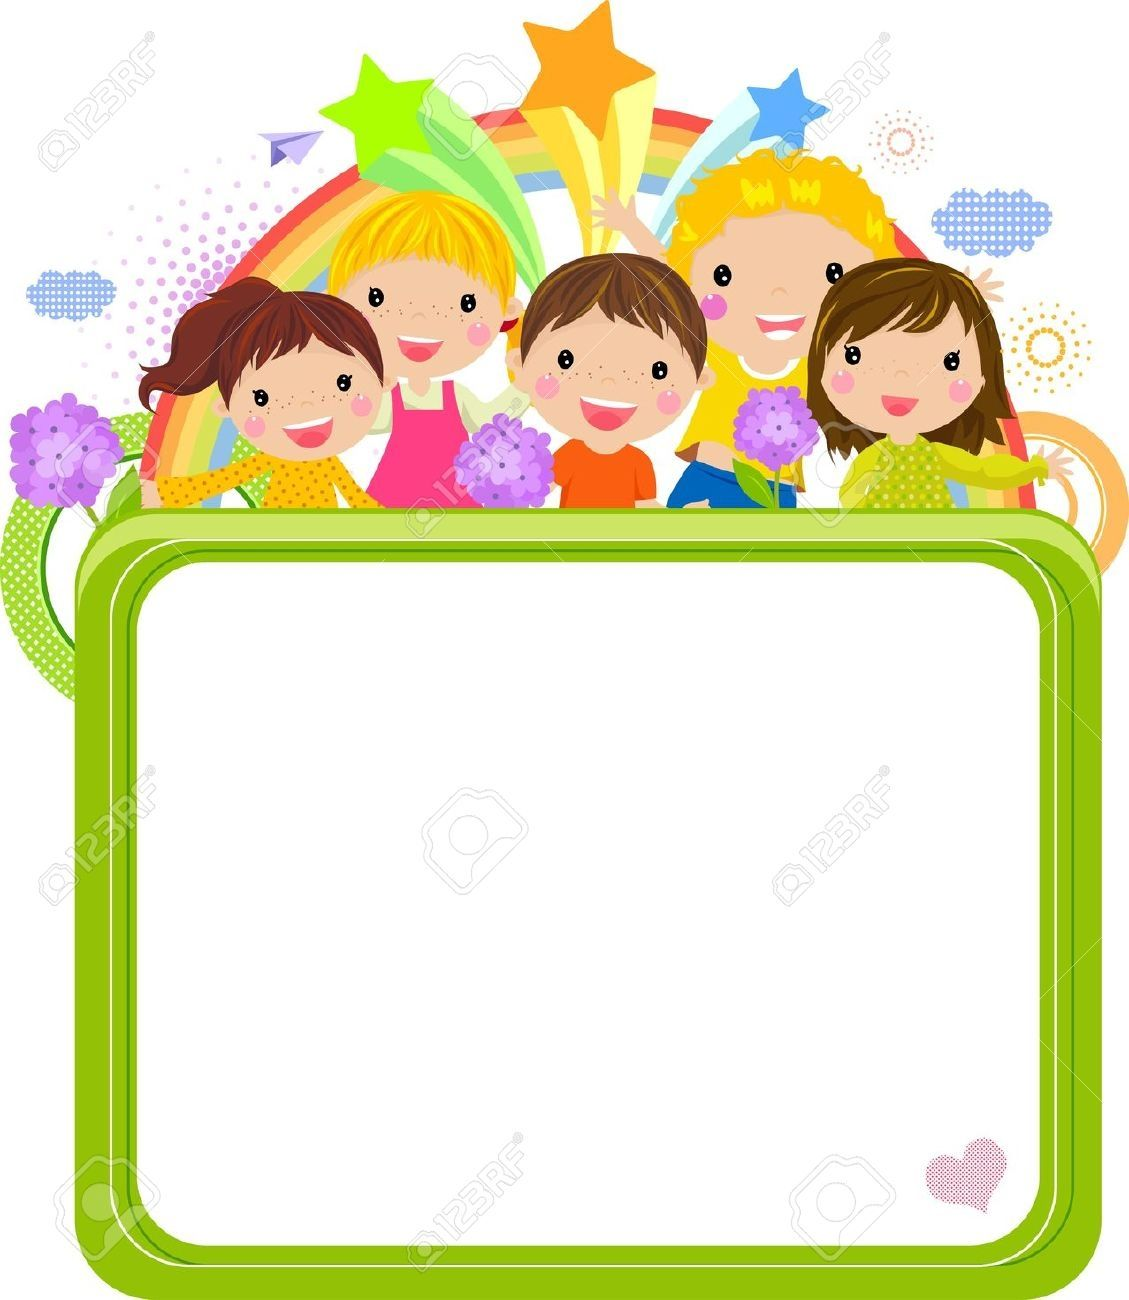 School border background ppt. Boarder clipart cute